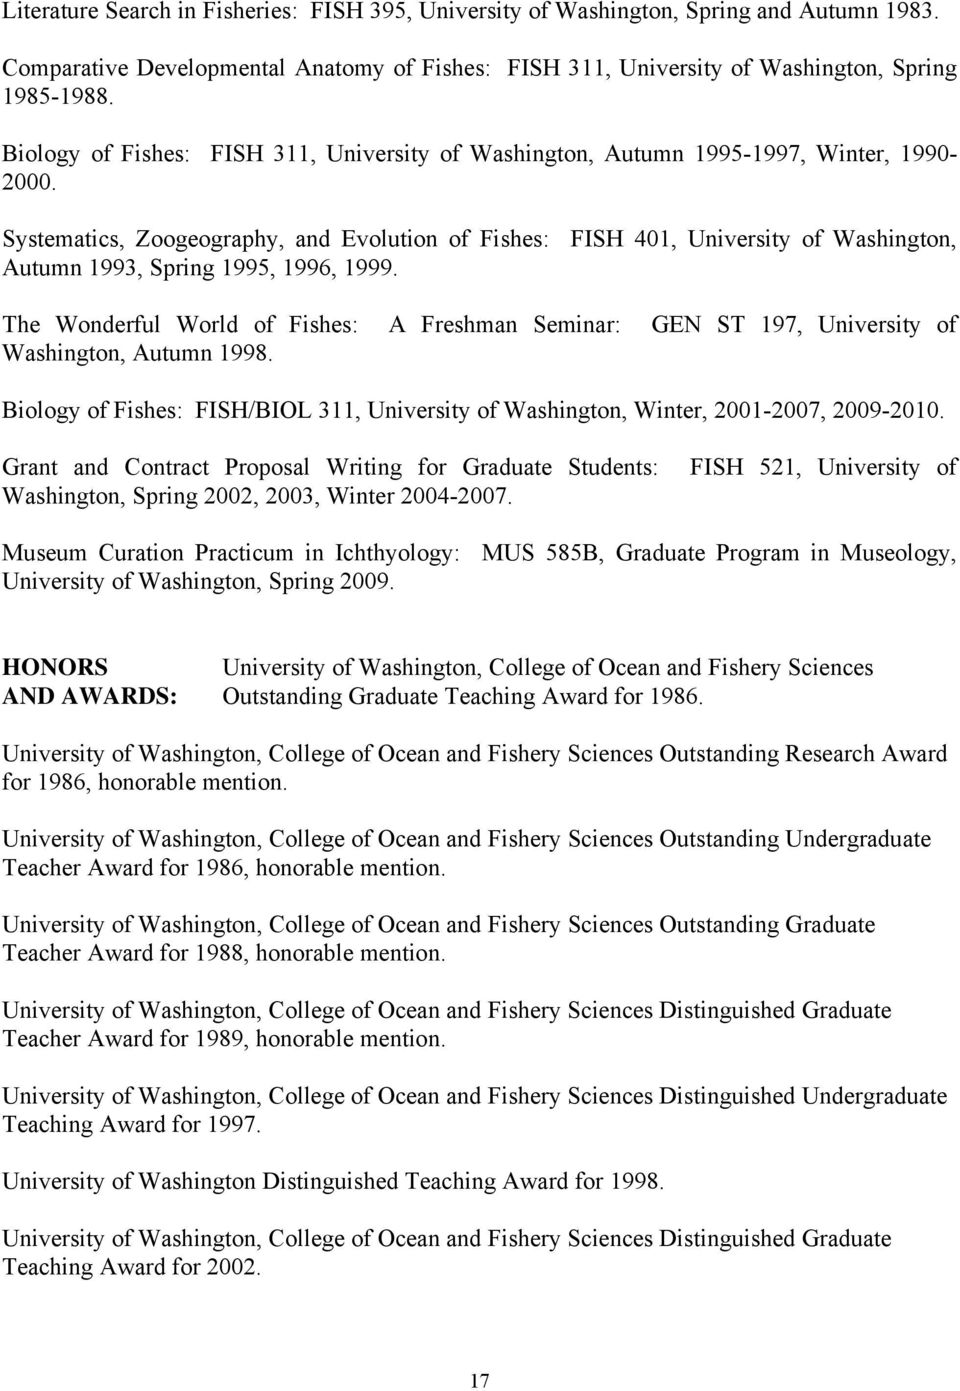 Systematics, Zoogeography, and Evolution of Fishes: FISH 401, University of Washington, Autumn 1993, Spring 1995, 1996, 1999.